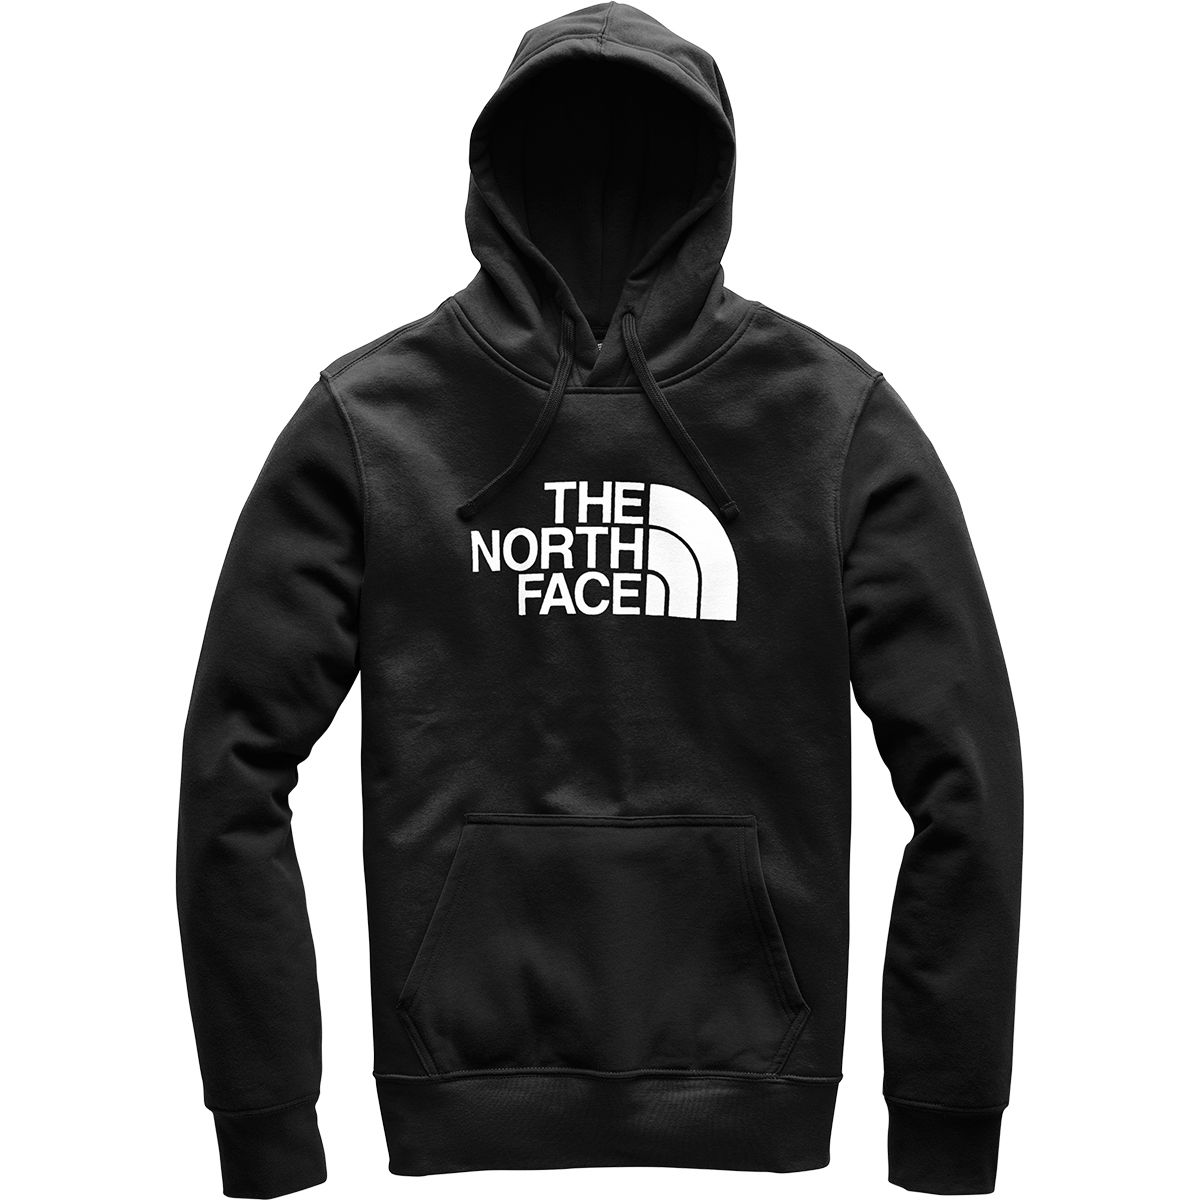 The North Face Men S Half Dome Pullover Hoodie In 2021 North Face Hoodie North Face Mens Hoodies [ 1200 x 1200 Pixel ]